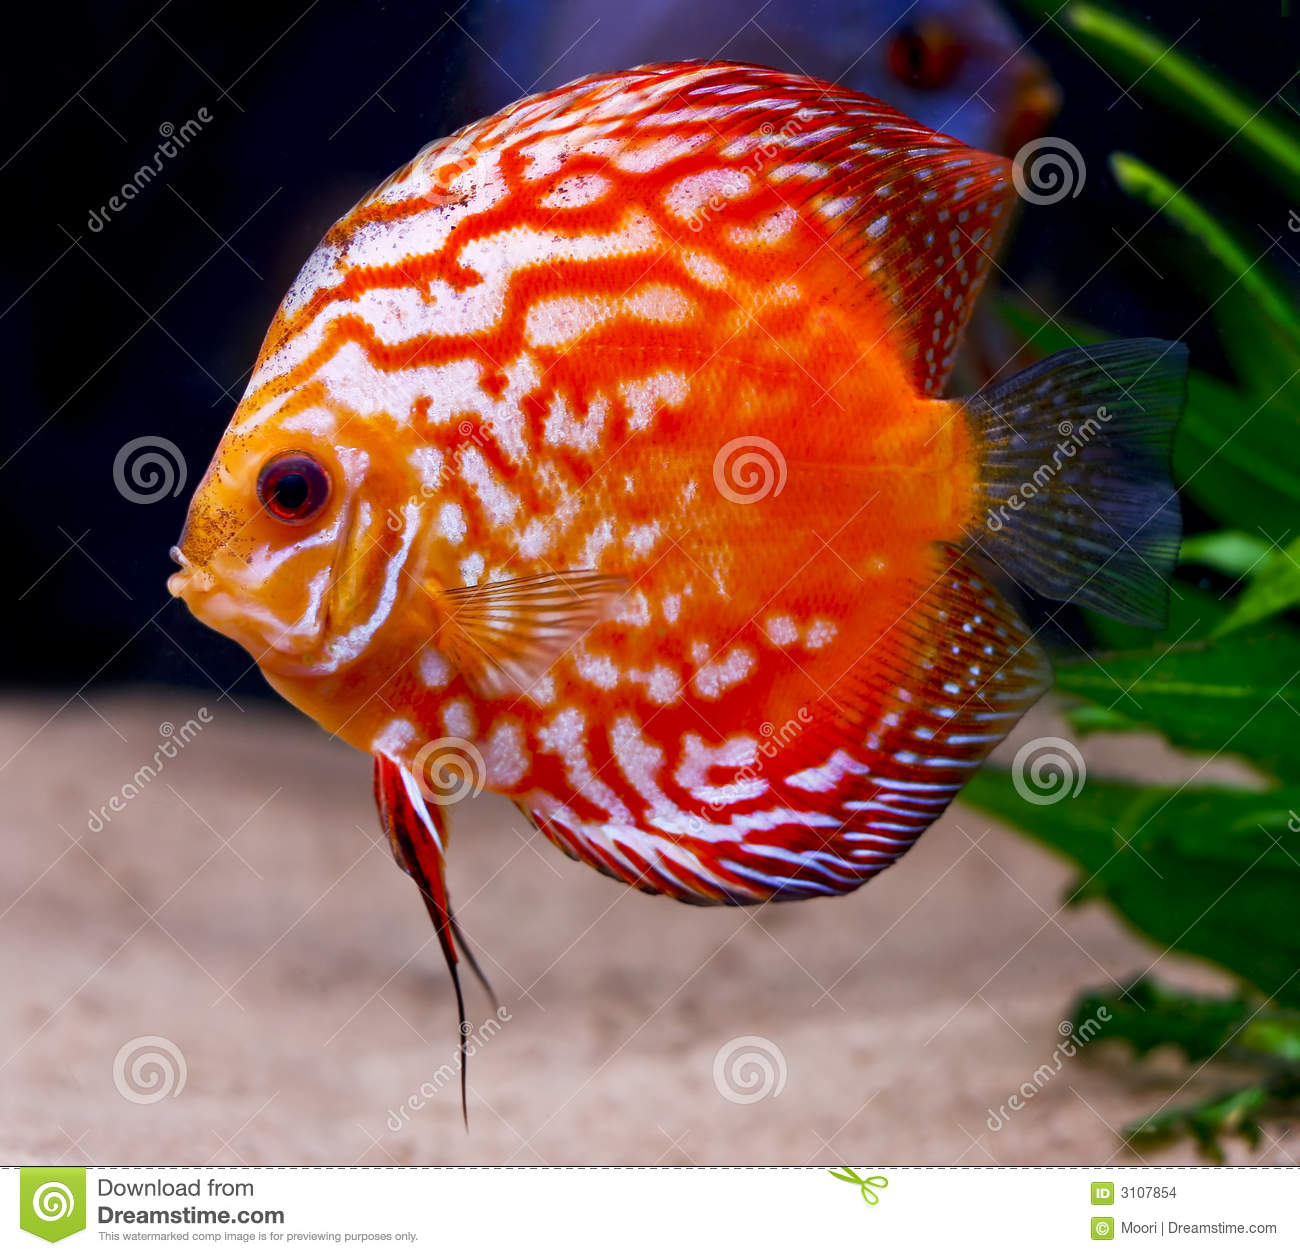 Colorful Tropical Discus Fish Stock Photo - Image of diskus, depth ...